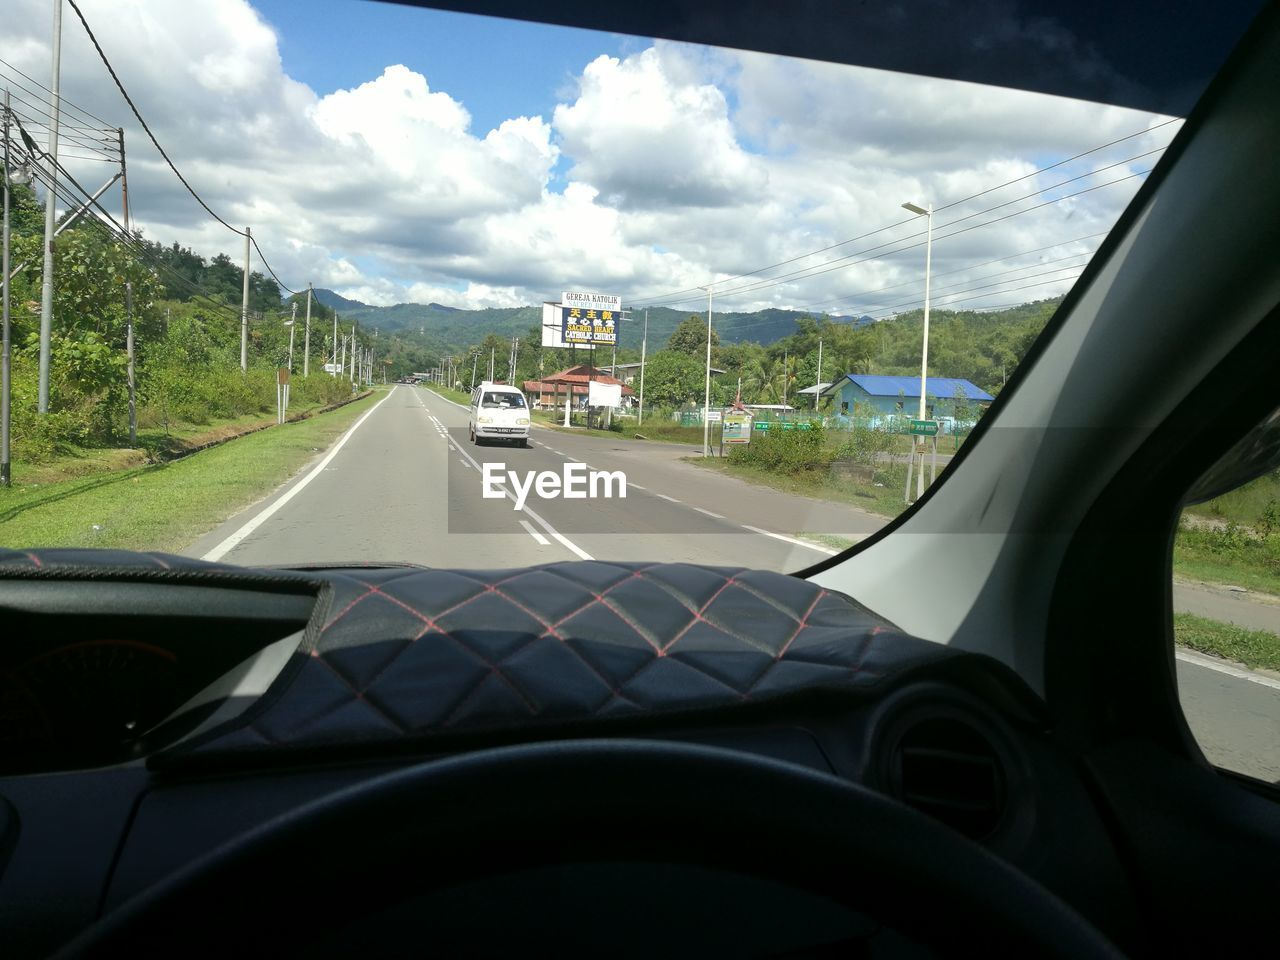 car, transportation, vehicle interior, car interior, glass - material, land vehicle, cloud - sky, windshield, sky, mode of transport, road, day, dashboard, travel, steering wheel, no people, car point of view, the way forward, tree, nature, close-up, outdoors